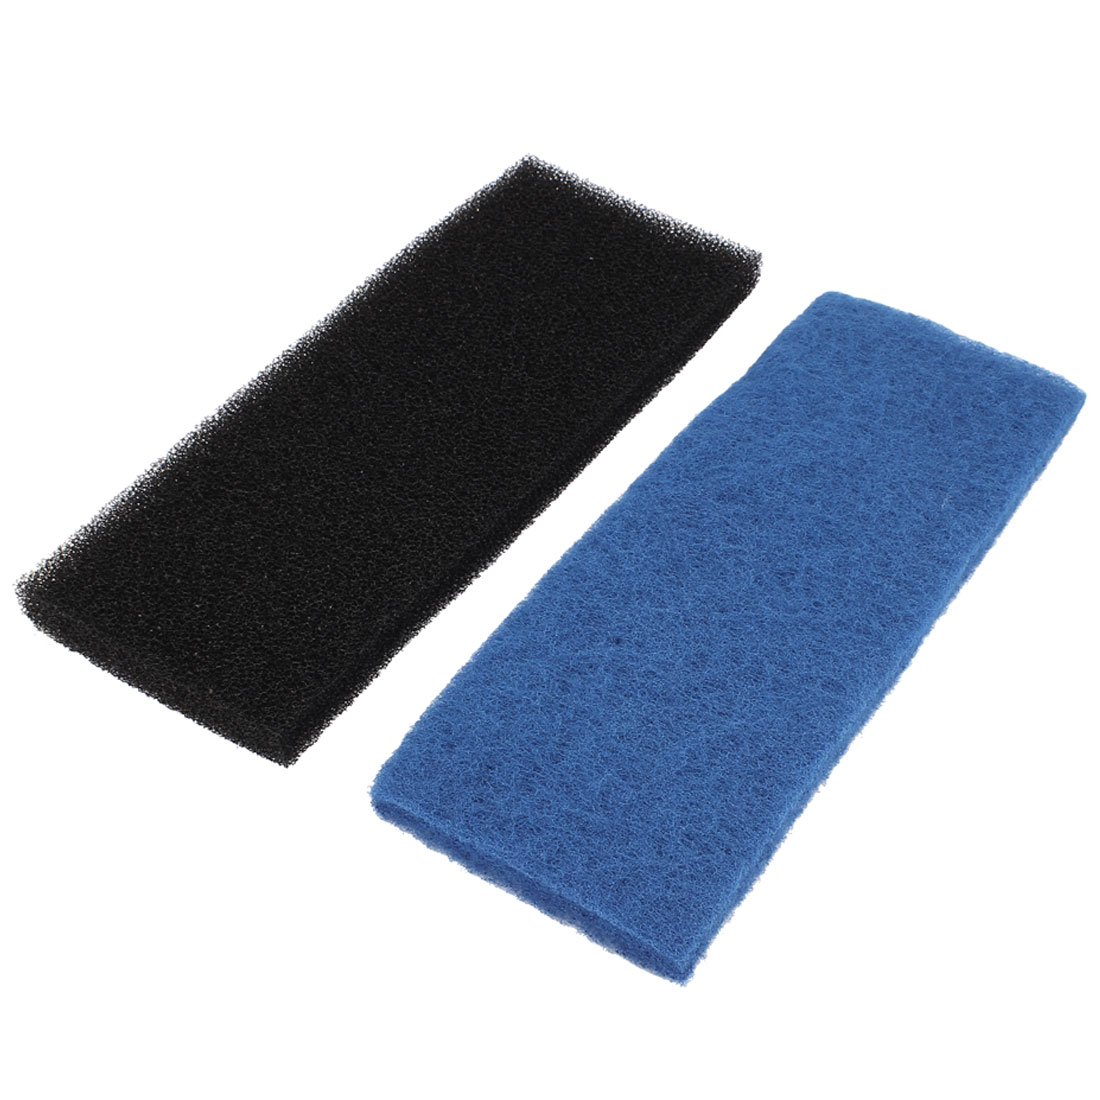 2pcs 32cm x 12cm x 2cm Black Blue Fresh Water Filter Sponge Block Pad for Aquarium Fishbowl